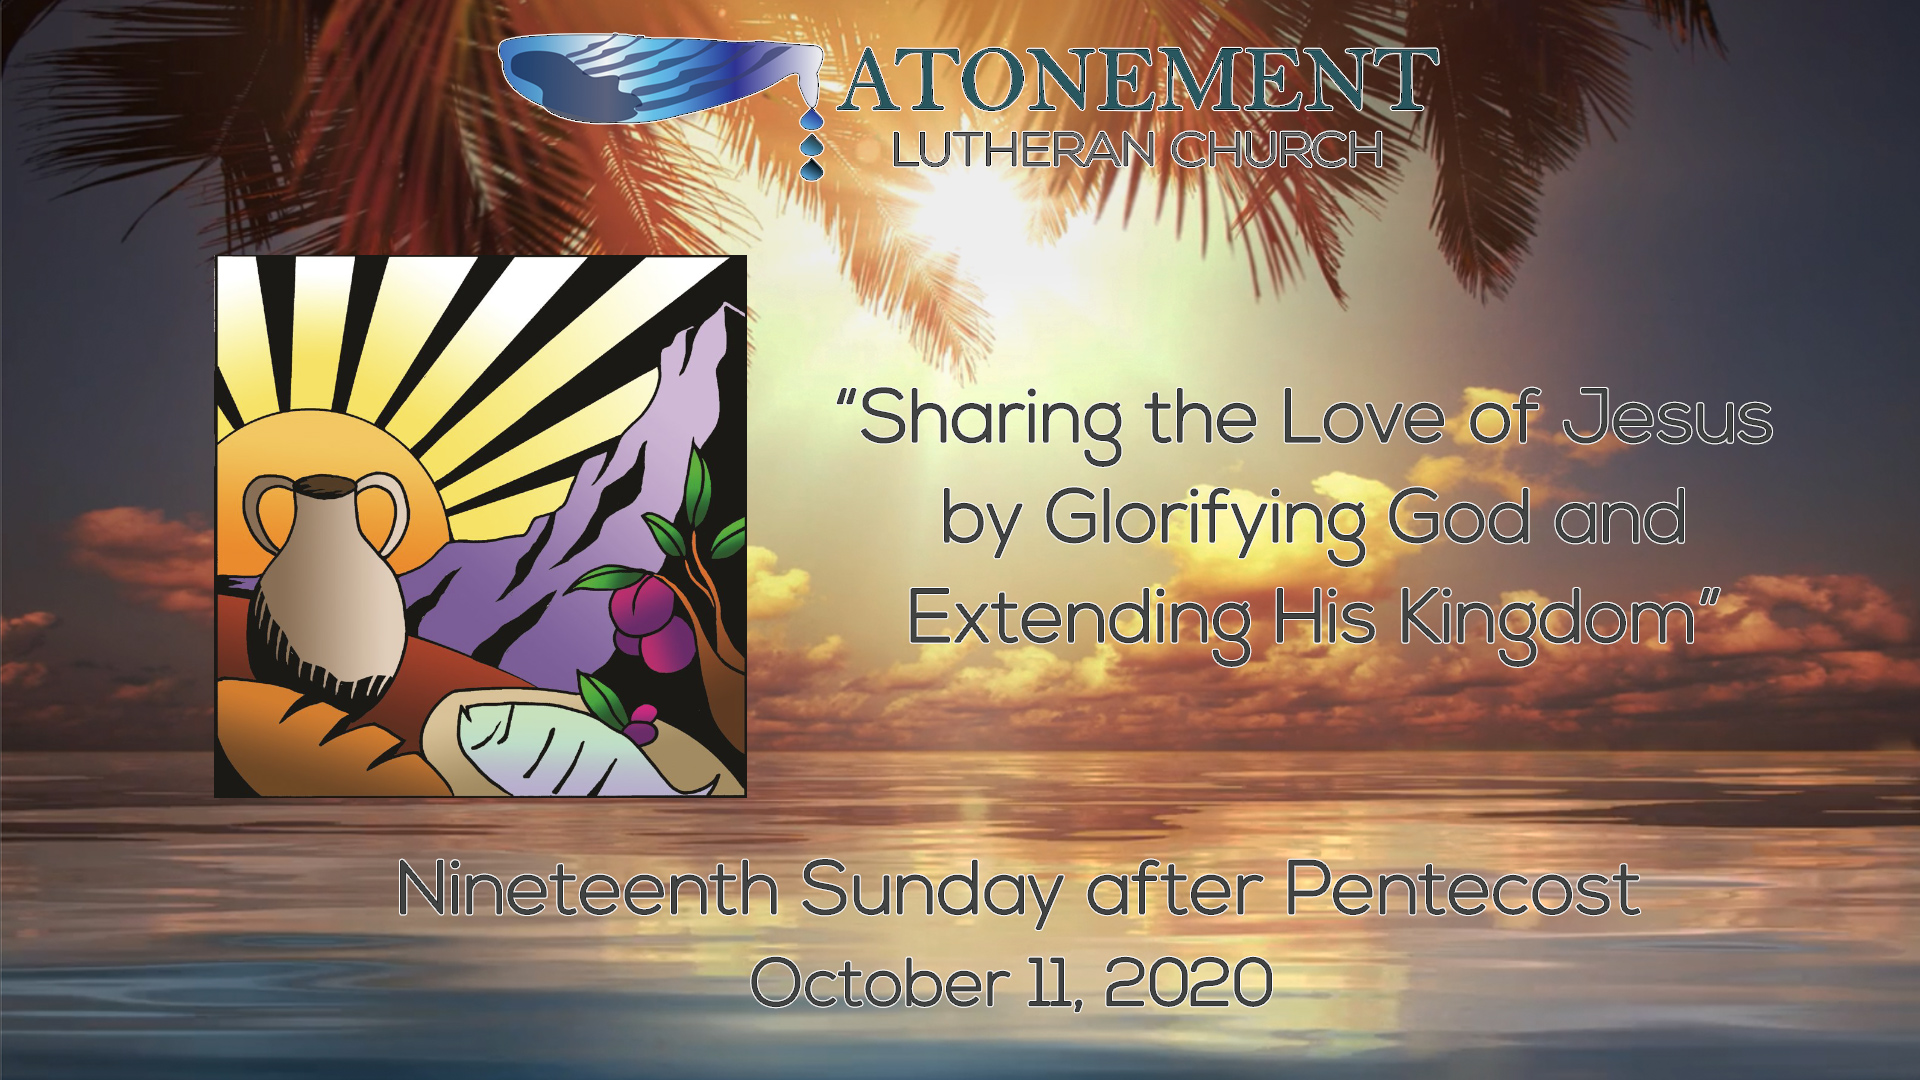 Oct. 11th, 2020, 19th Sunday after Pentecost